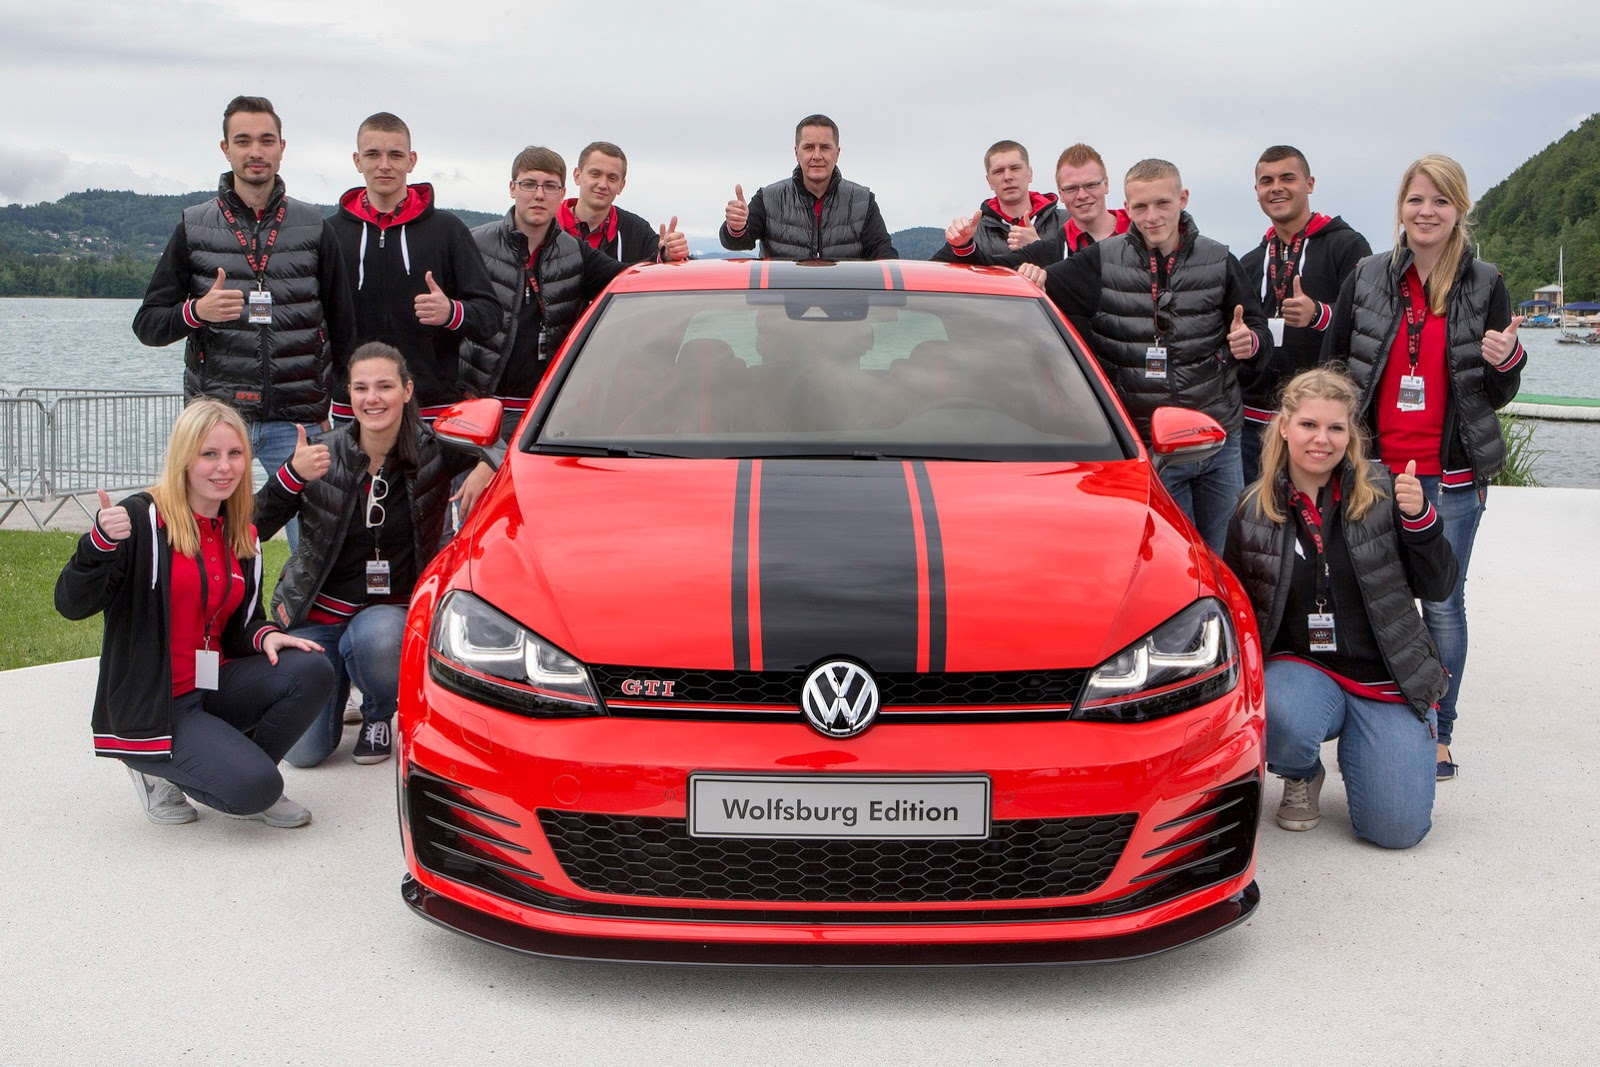 380 HP Golf GTI Wolfsburg Edition Revealed at Worthersee - autoevolution